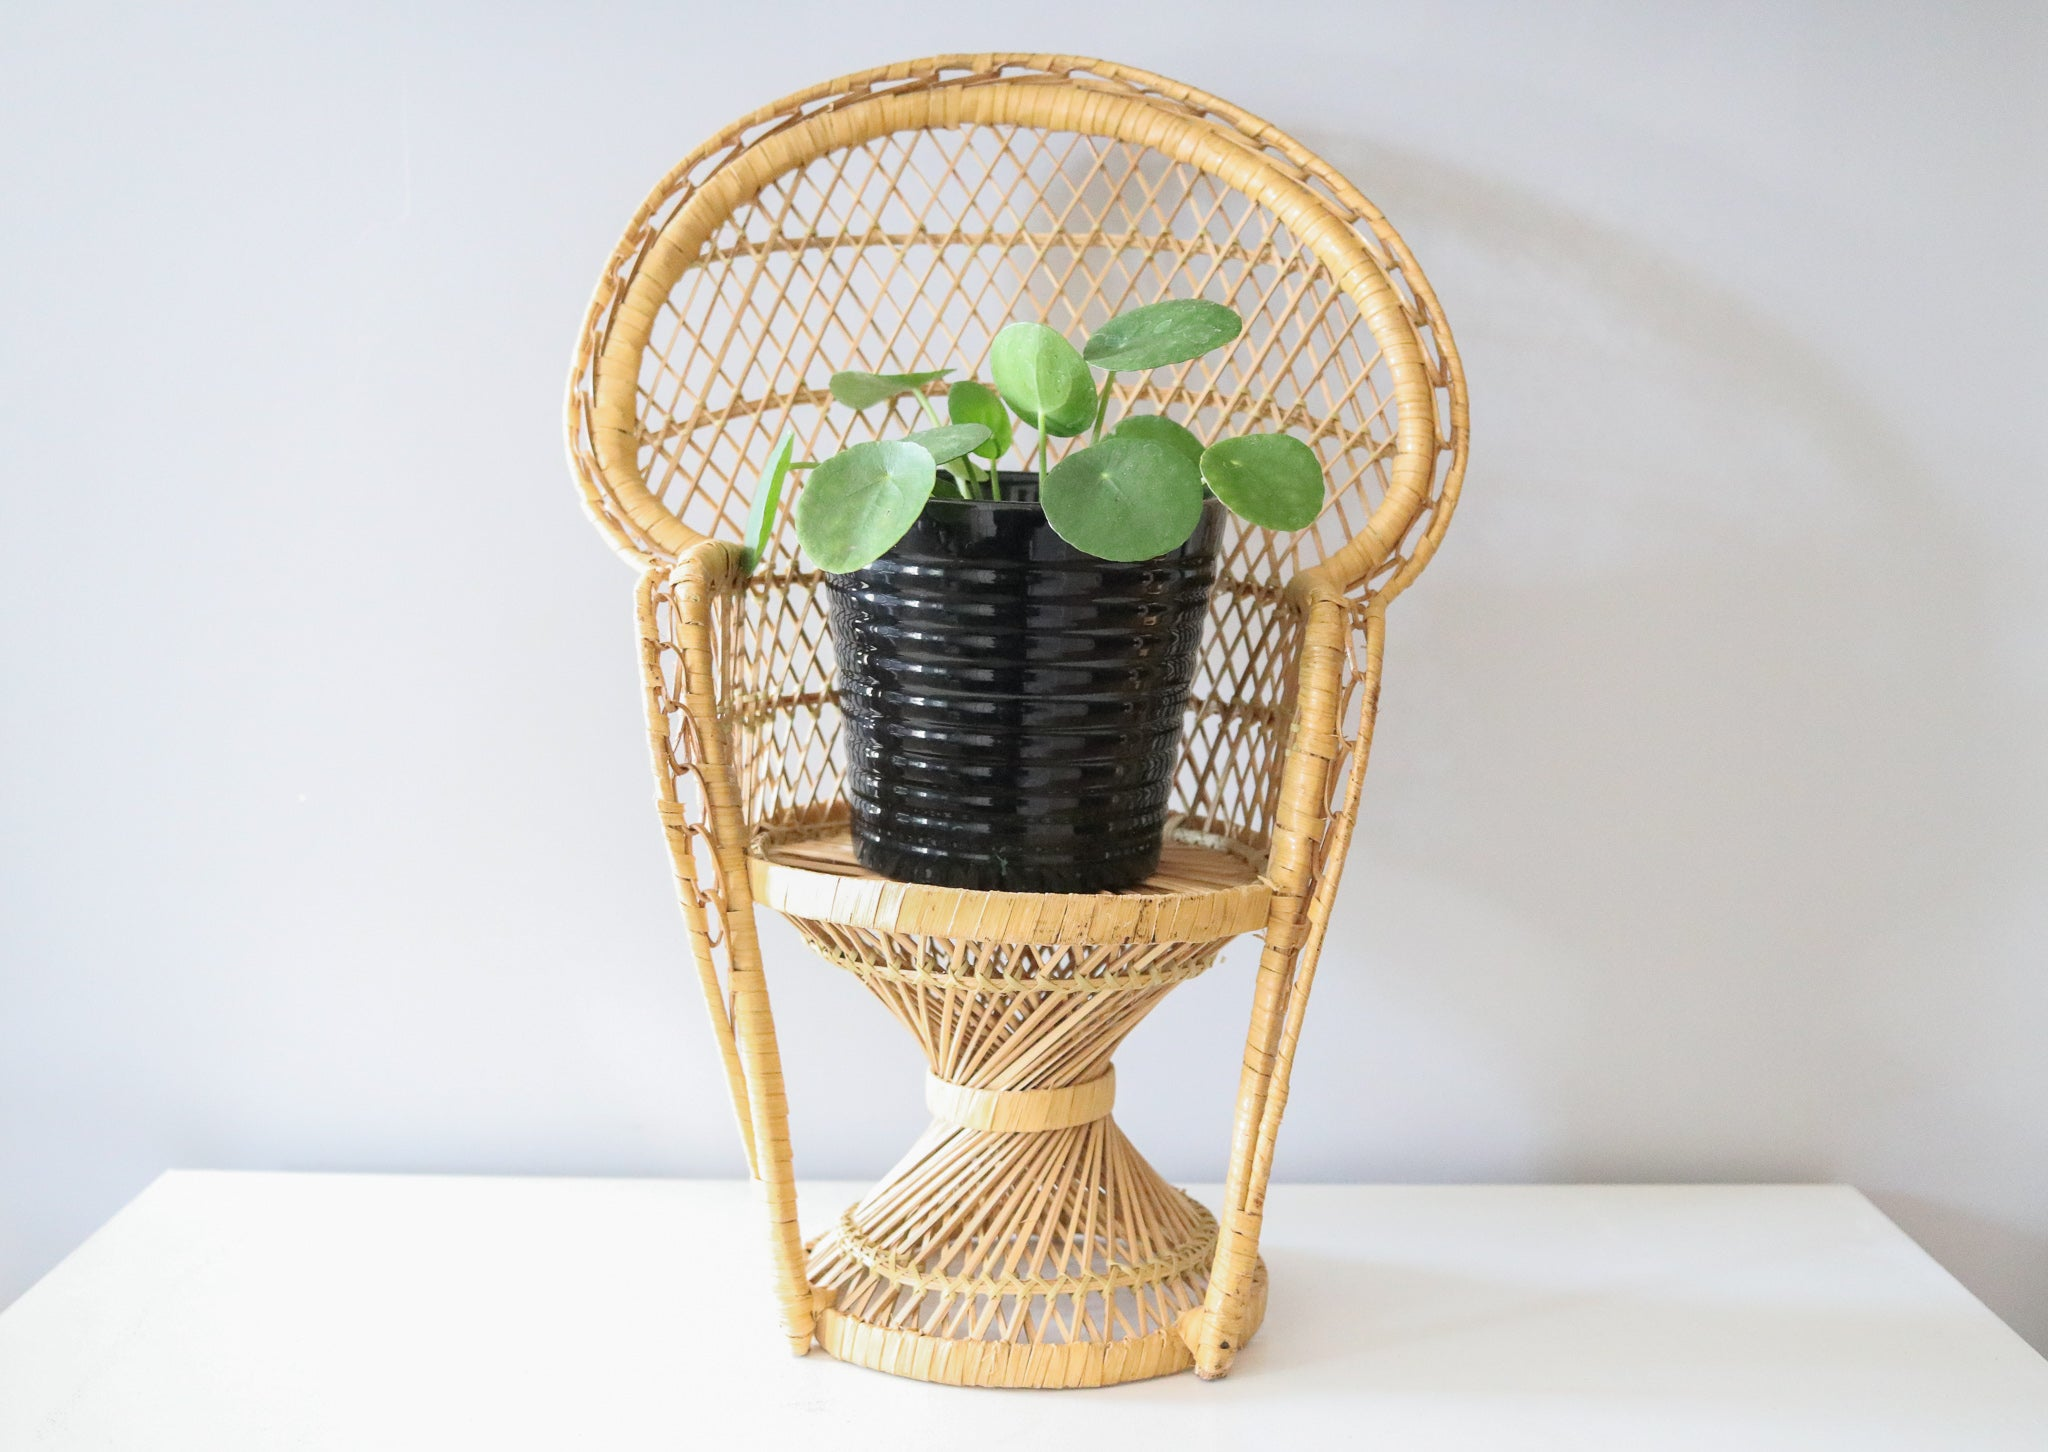 Wicker Peacock Chair Planter